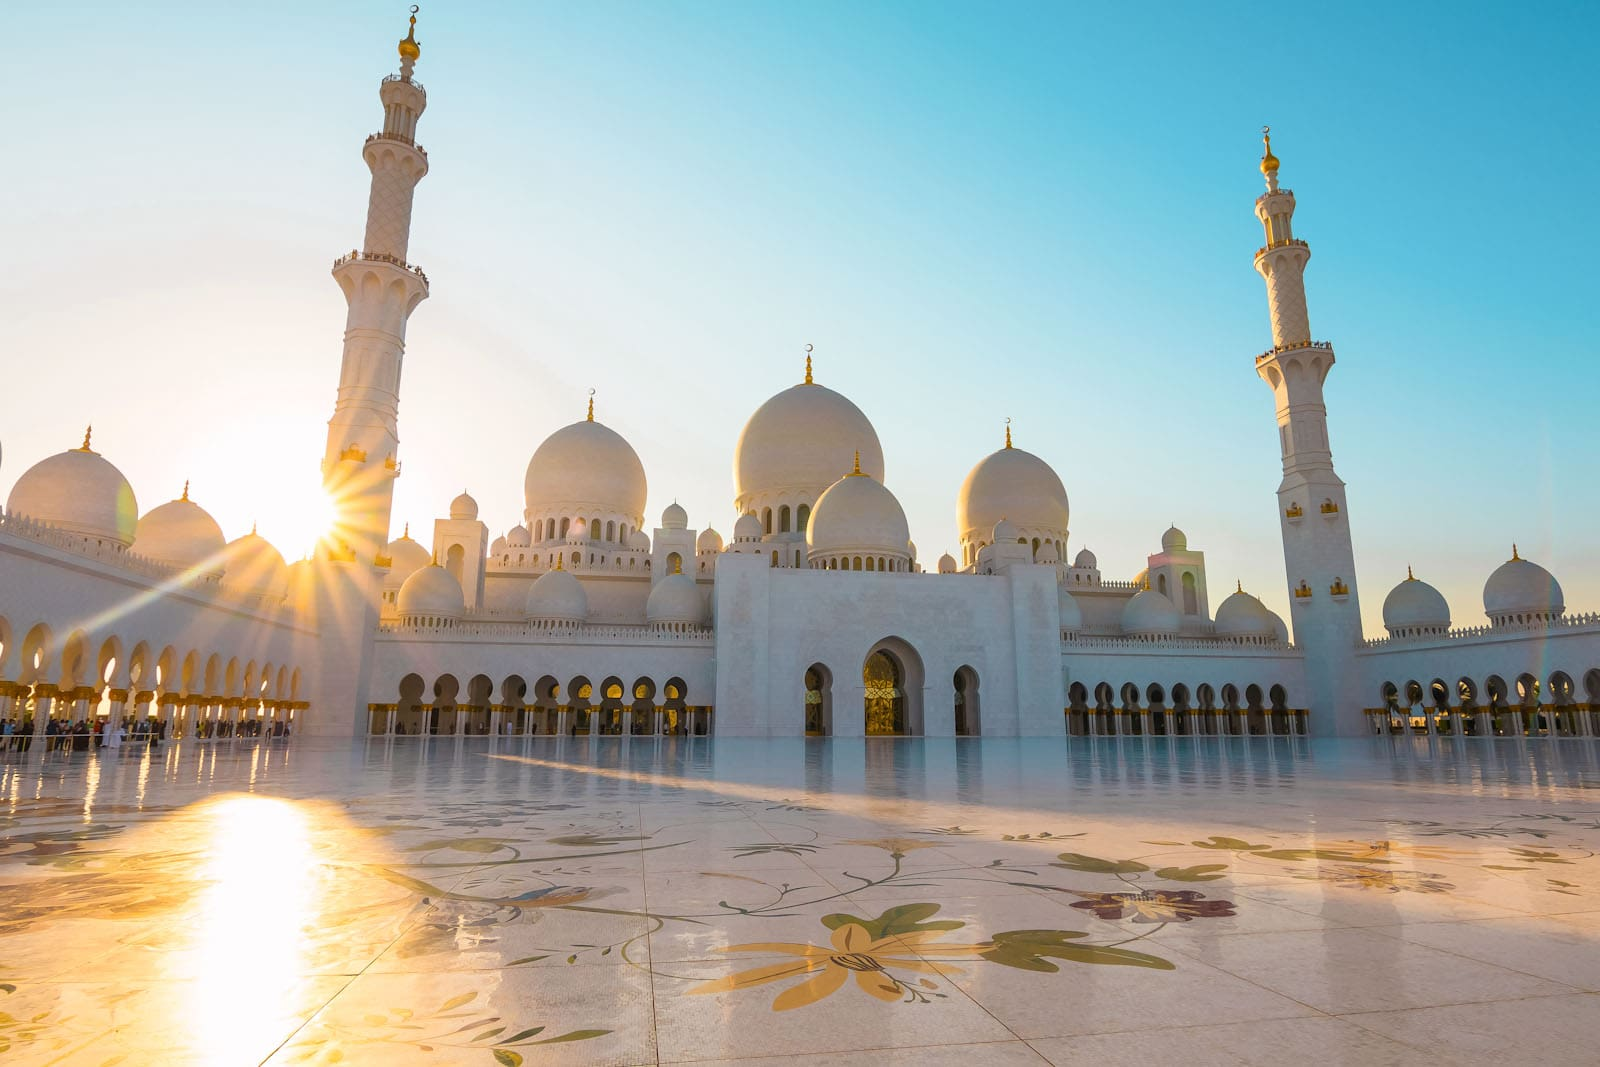 The sun rays peaking through the Sheikh Zayed Grand Mosque Abu Dhabi 2